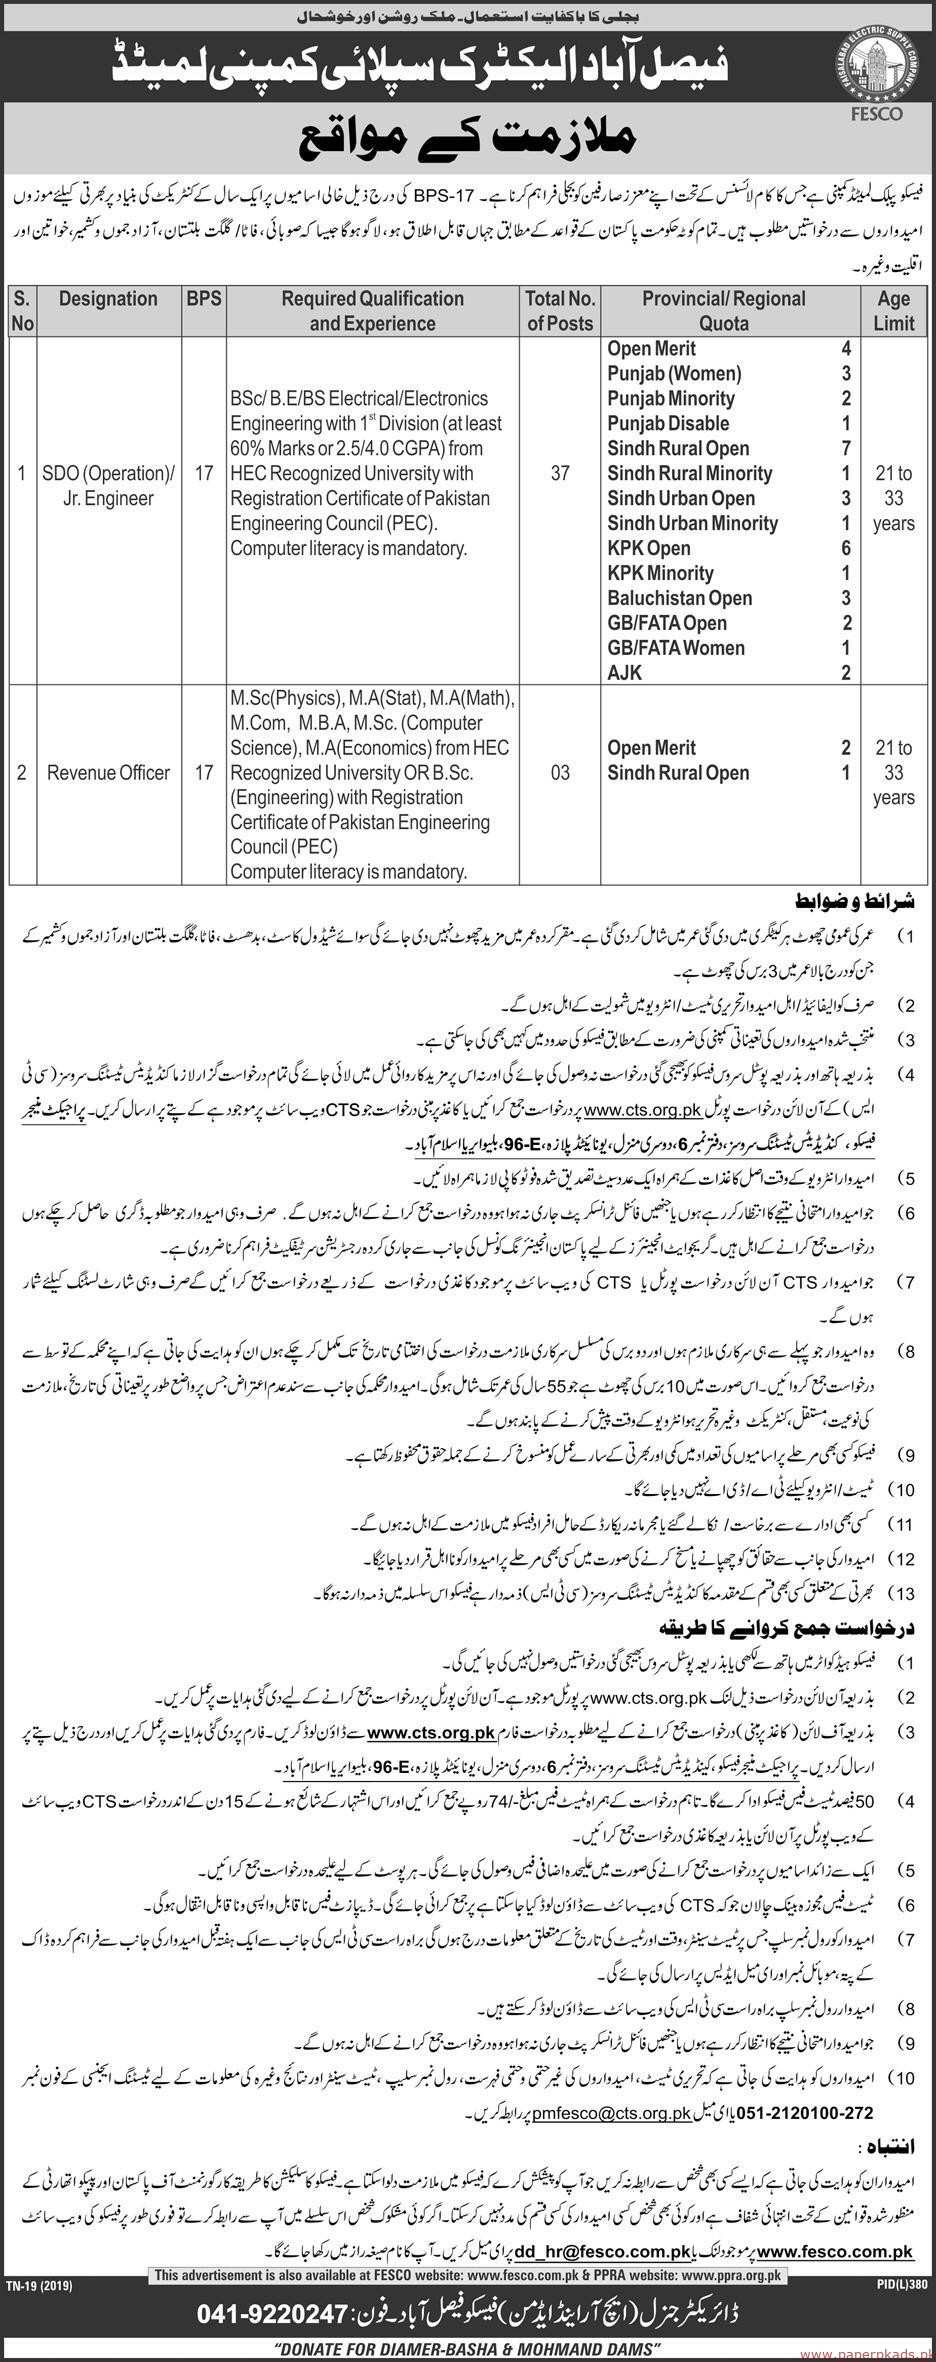 FESCO Faisalabad Electric Supply Company Limited Jobs via CTS 2019